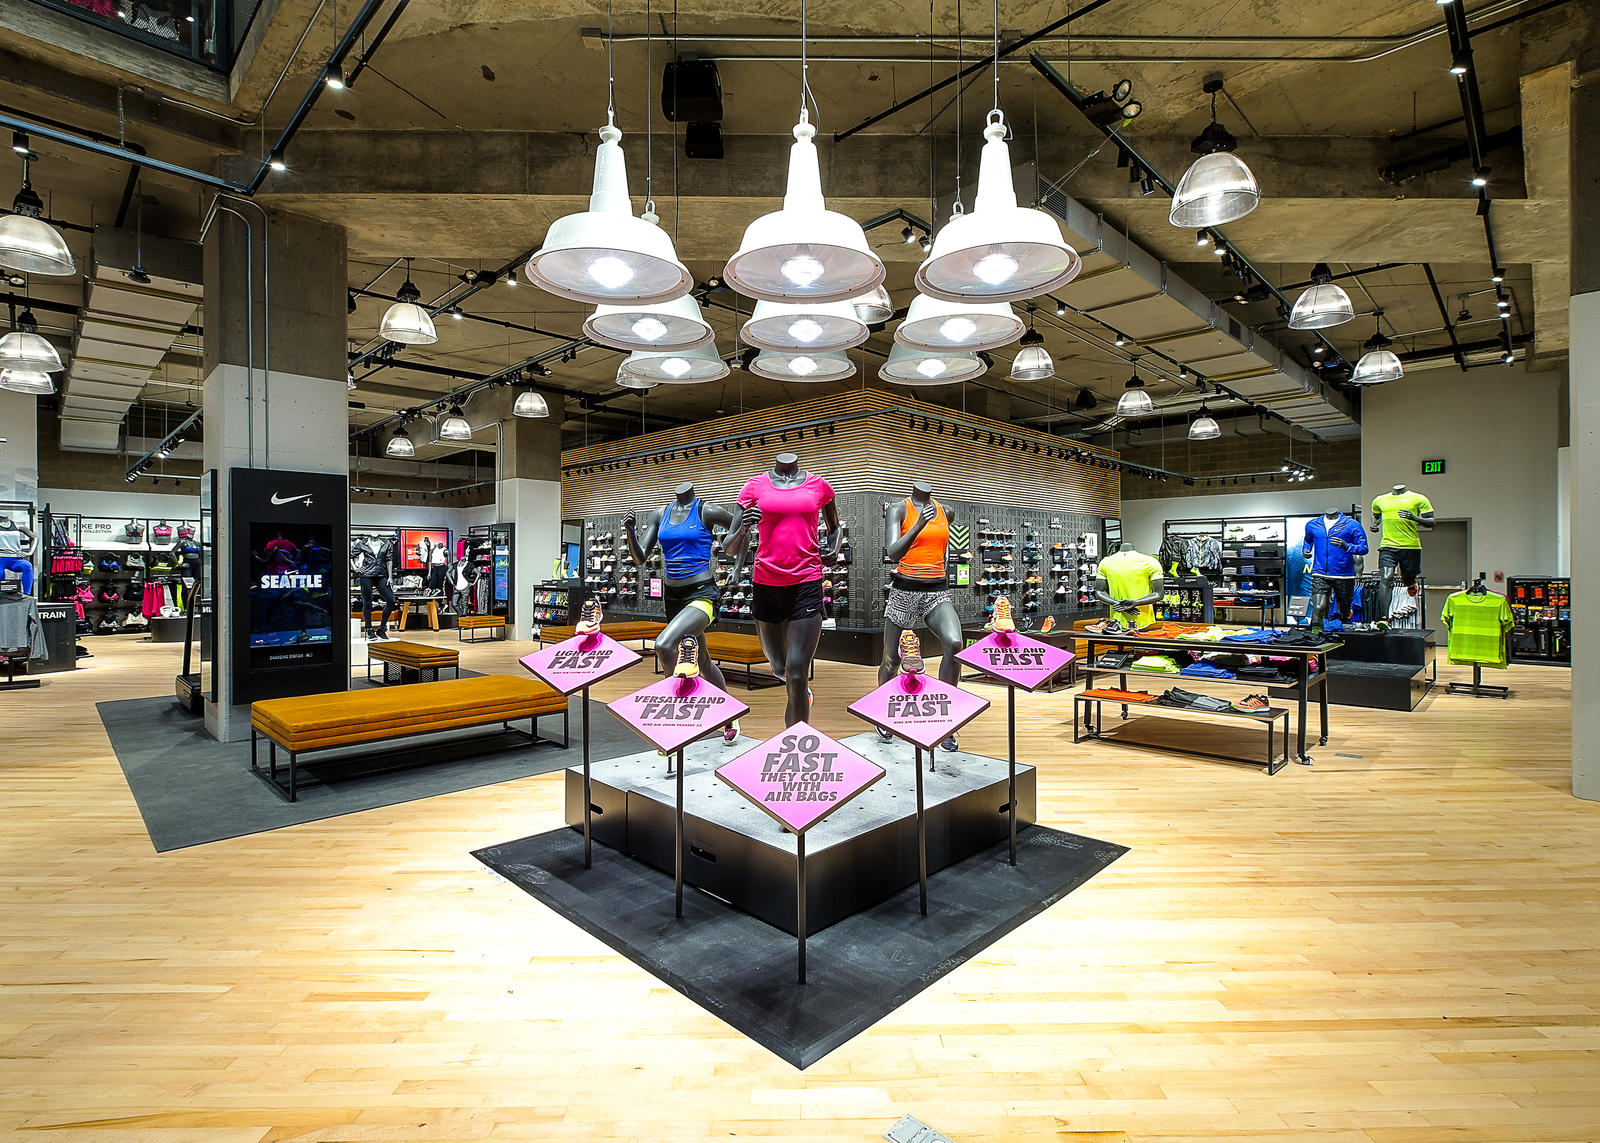 Nike seattlereopeningbeautyshots 7.29.15 9 rectangle 1600